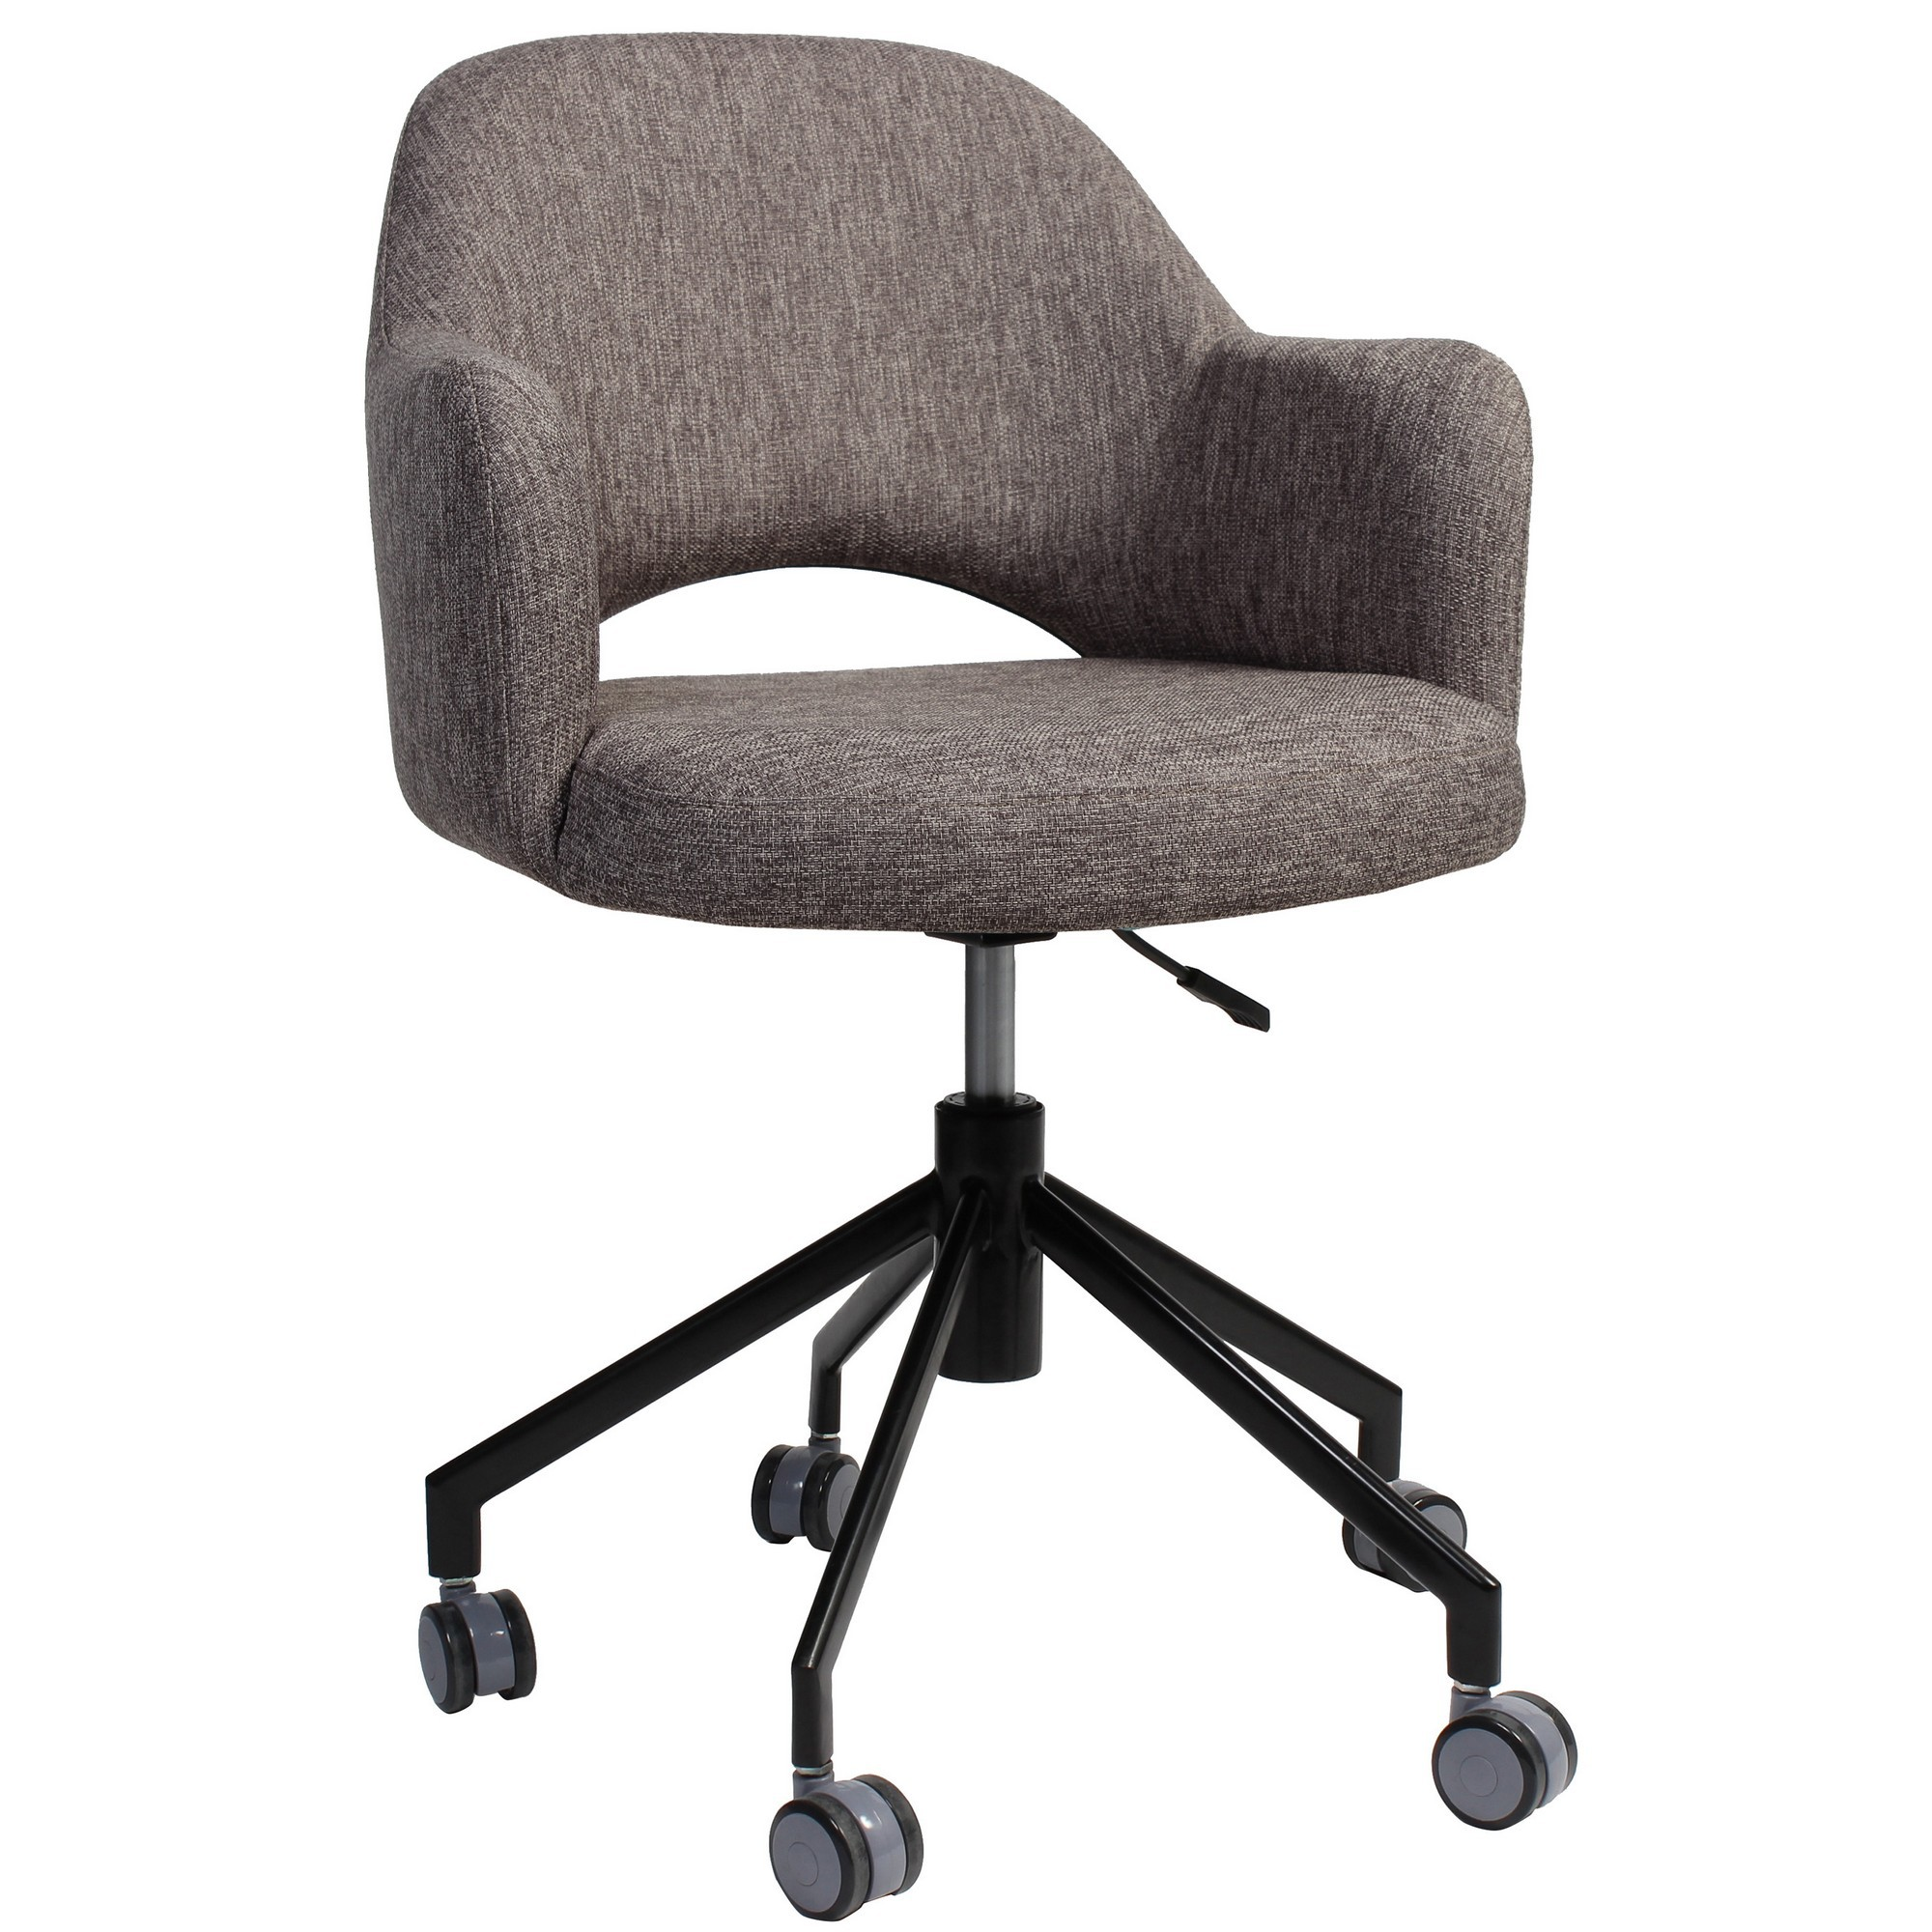 Albury Commercial Grade Gas Lift Fabric Office Armchair, Ash Grey / Black